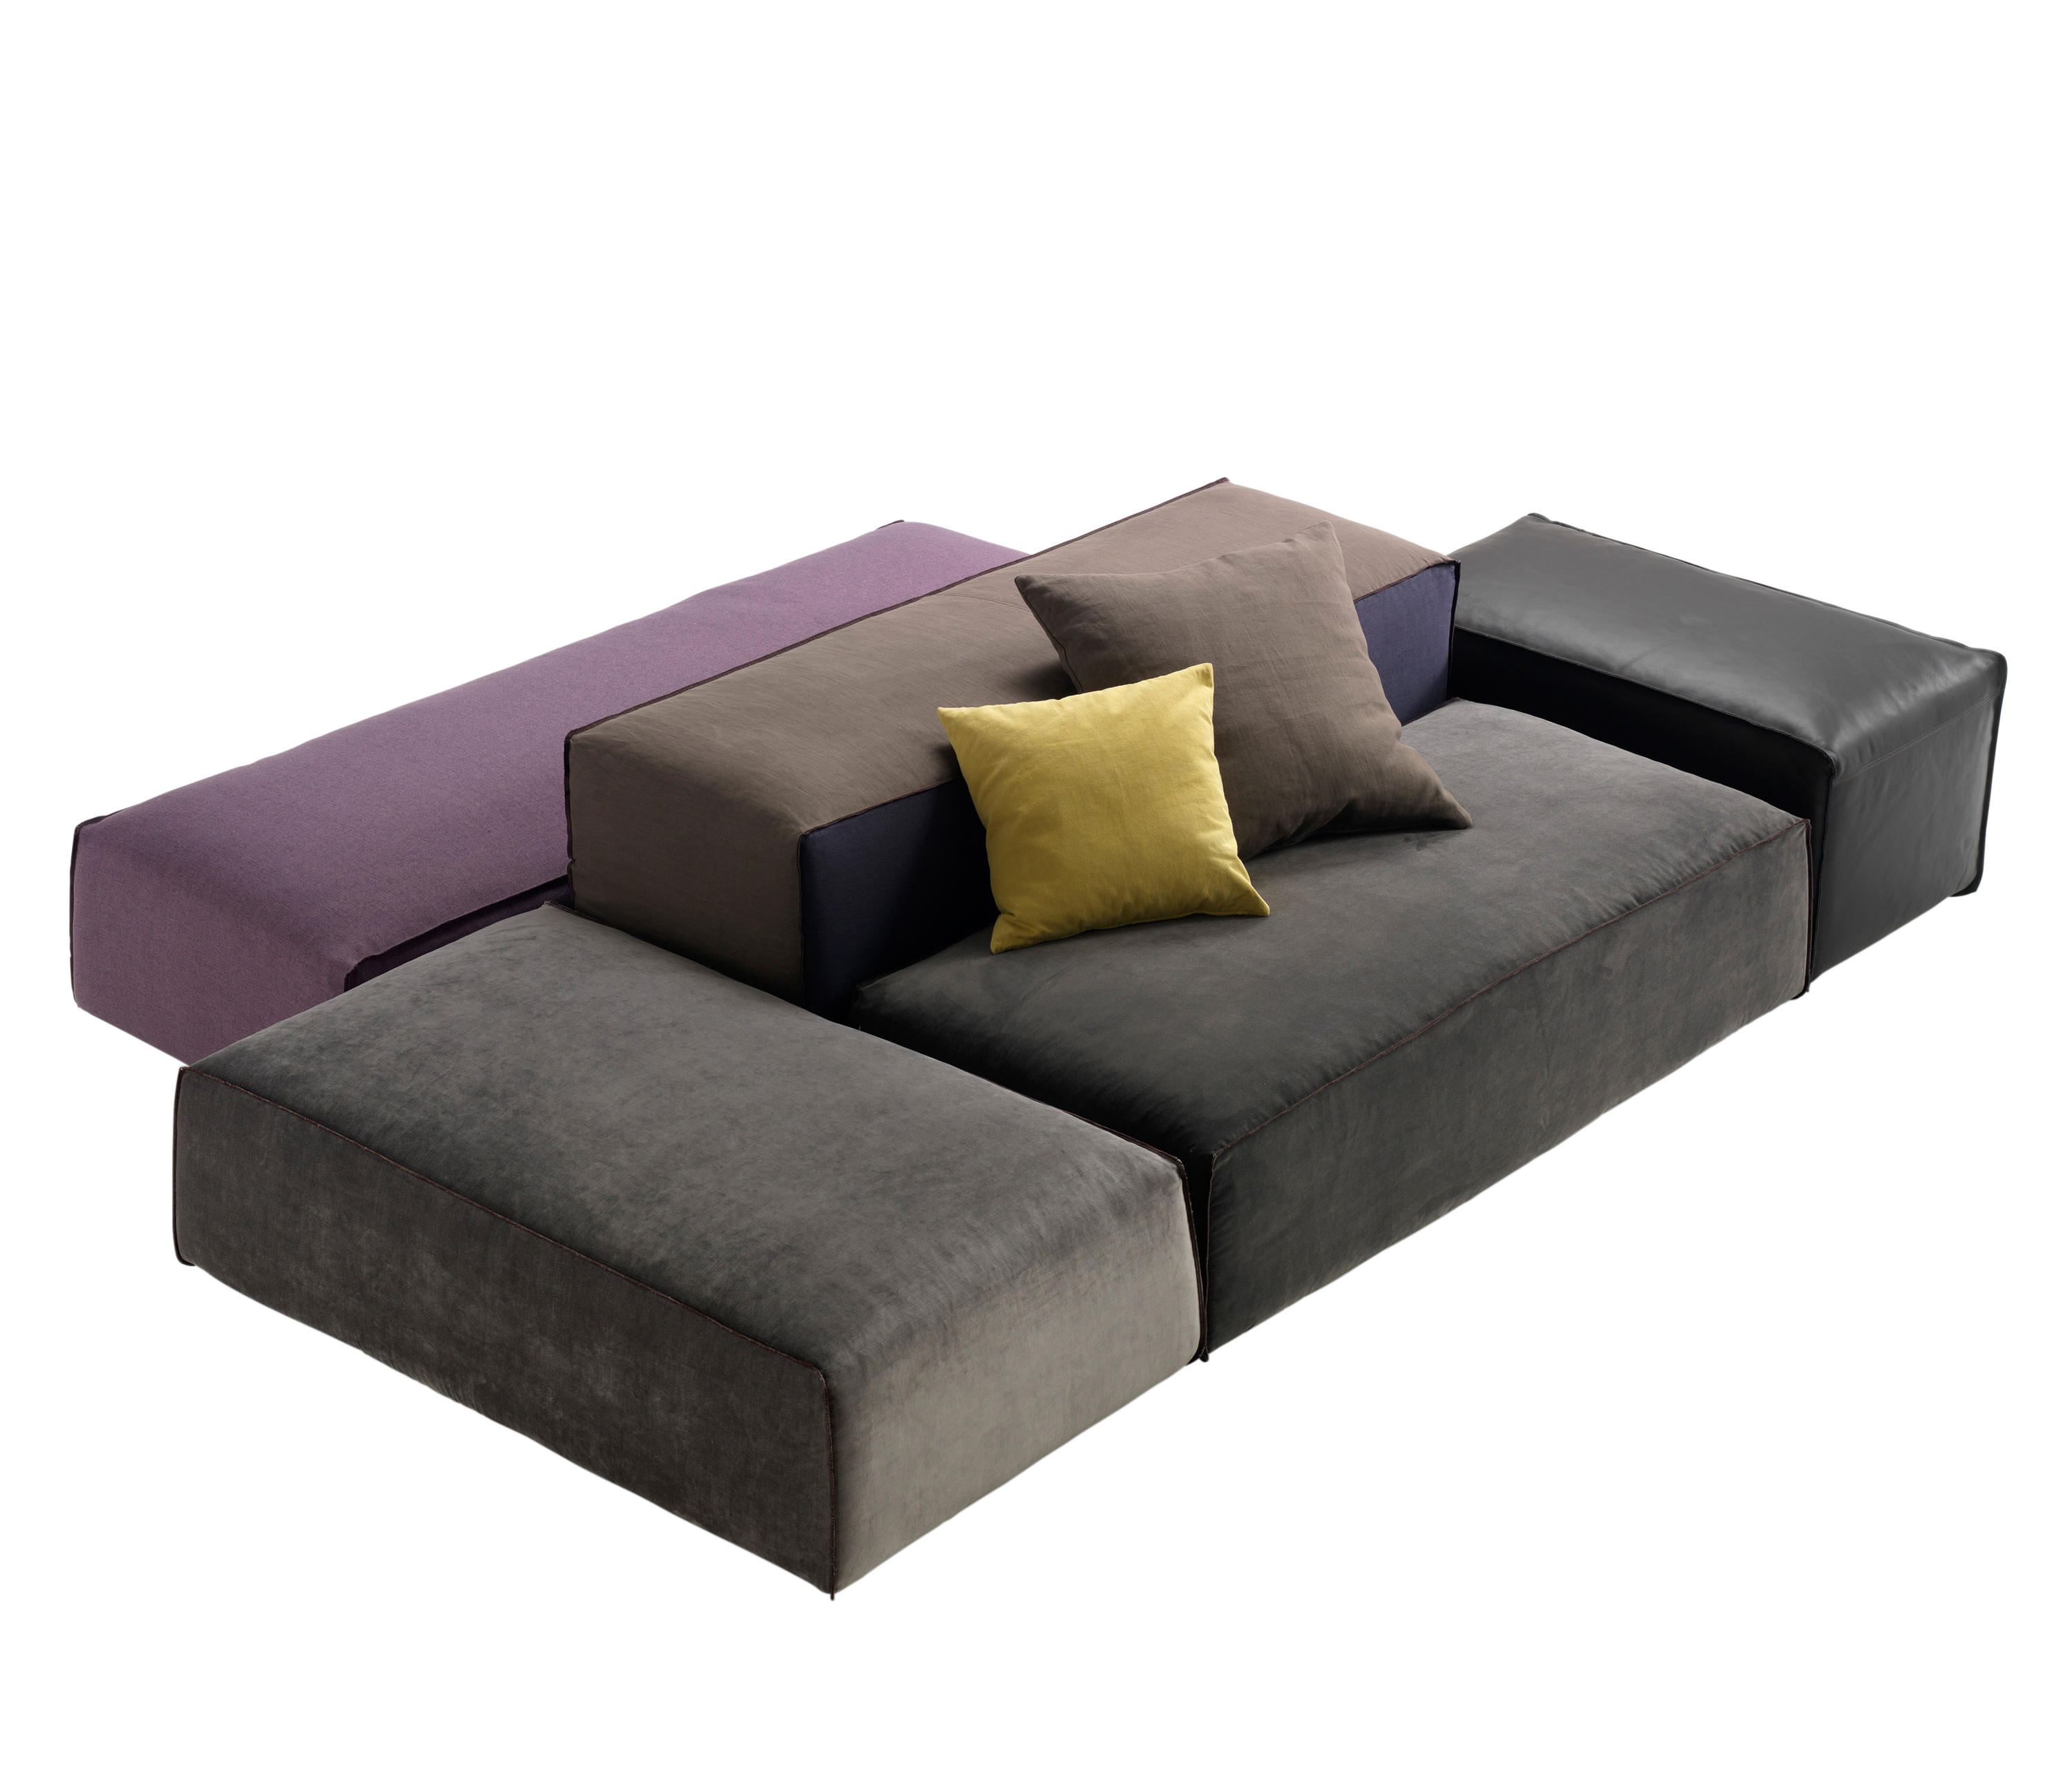 Divani Desiree Boog Alto Sofas From Désirée Architonic